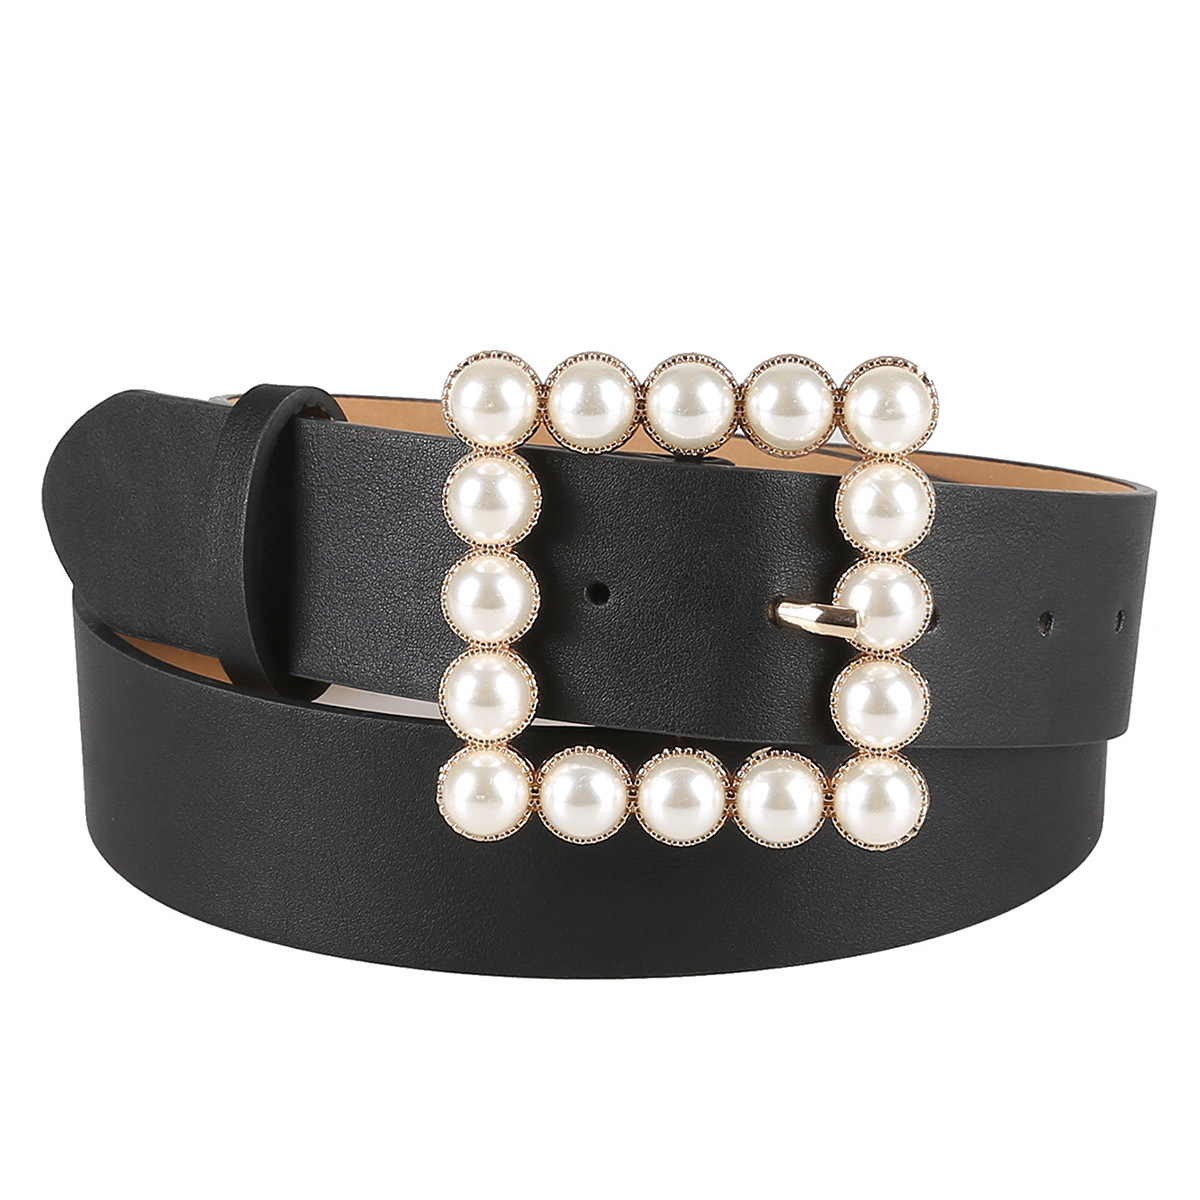 Pearl Buckle   belt   for Women Luxury Diamond PU Leather Strap Jeans Decorative   Belt   Party Harajuku Designer   Belts   for Women's